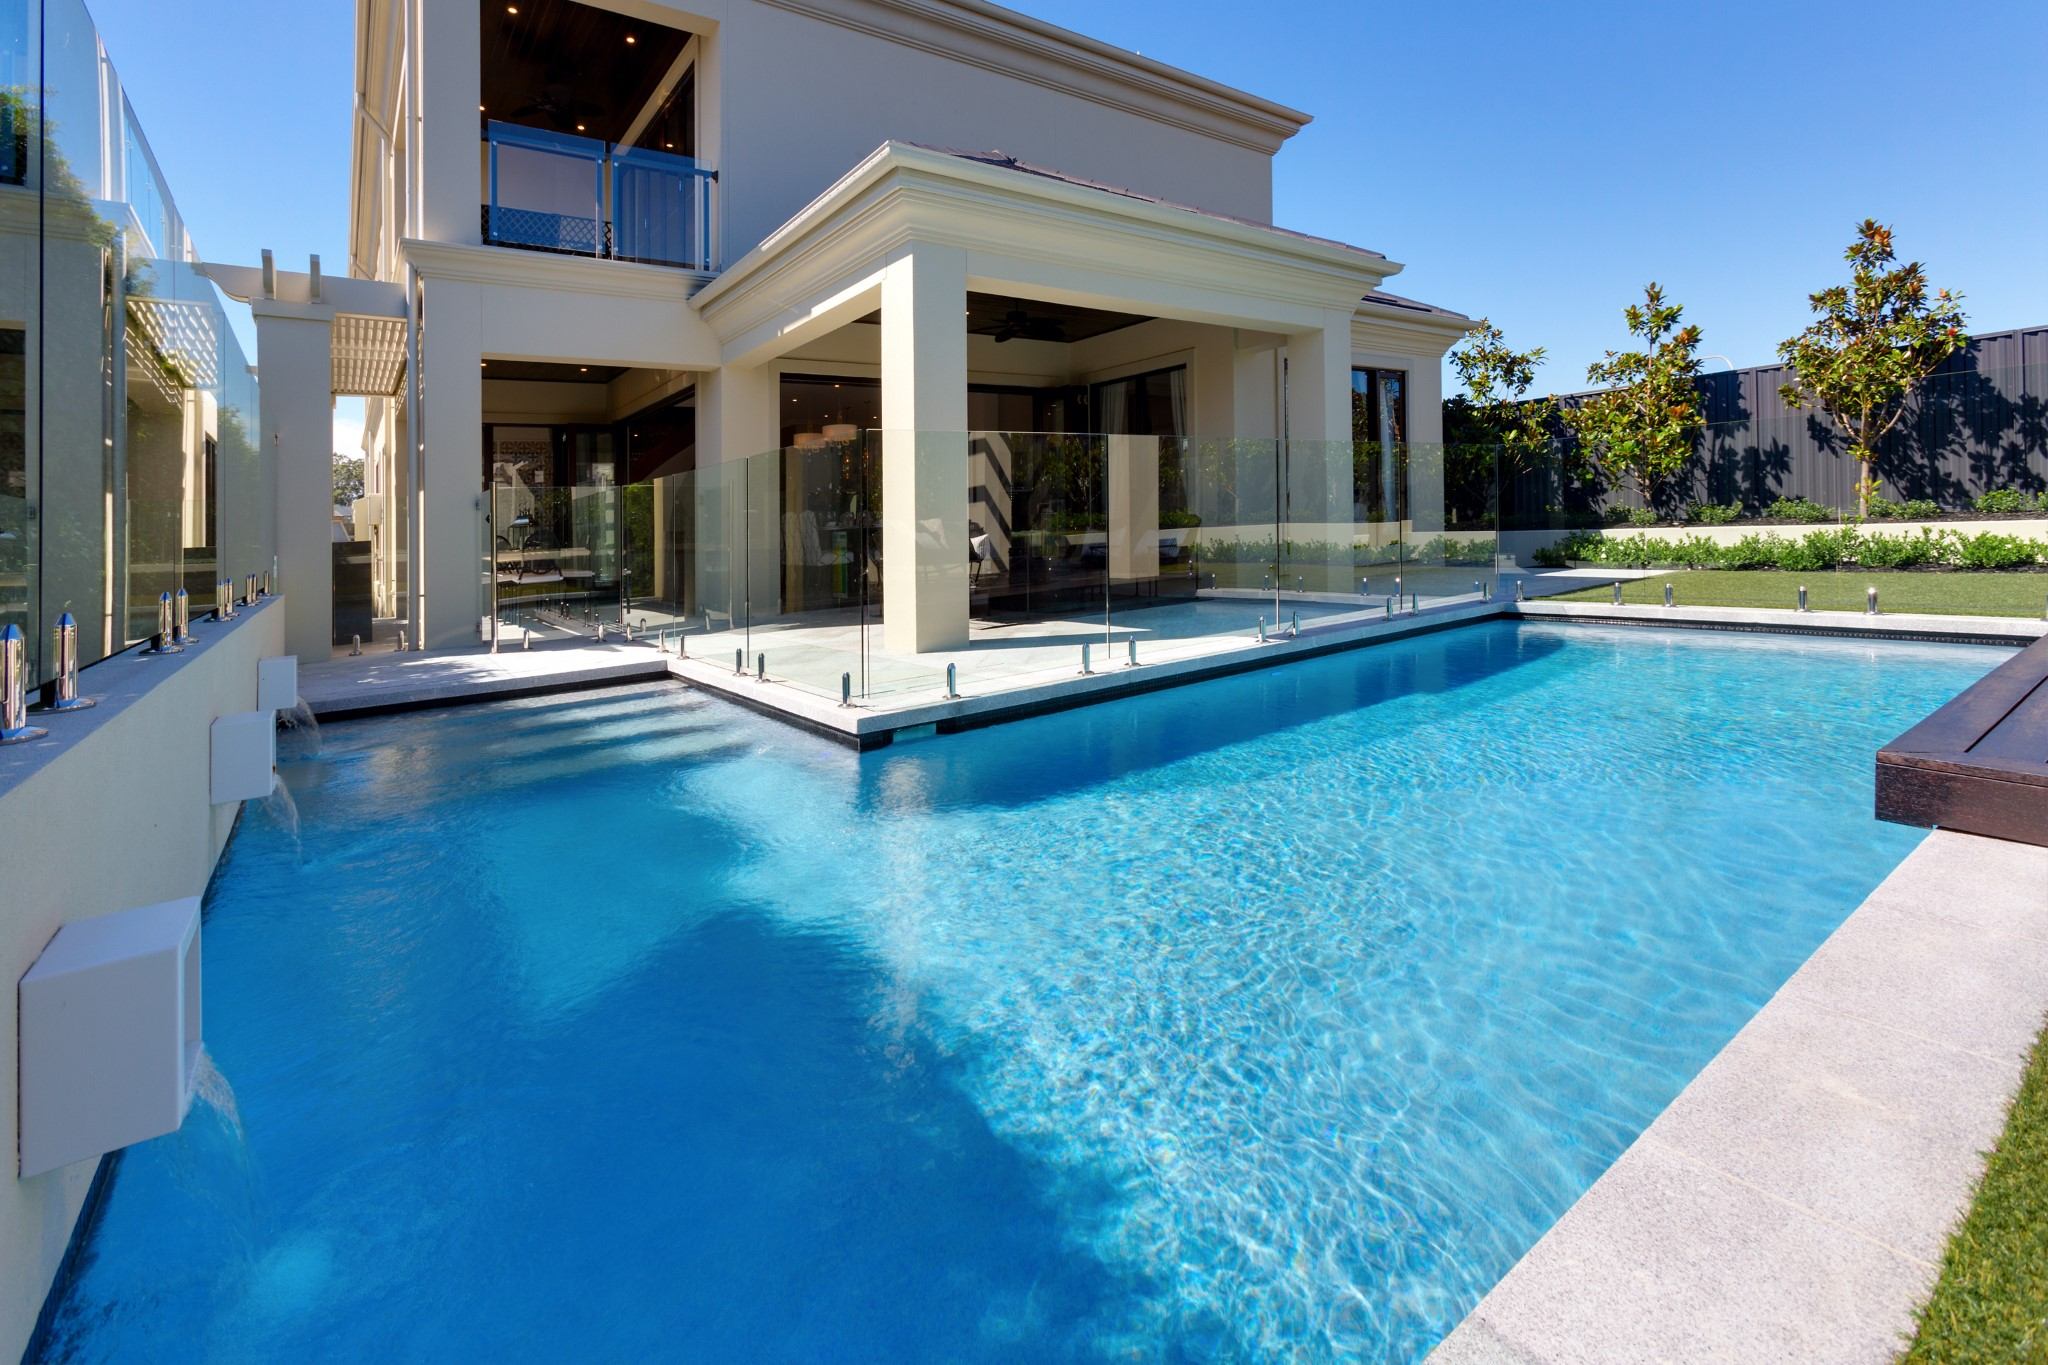 Luxurious private pool built in the backyard of a house in Kellyville